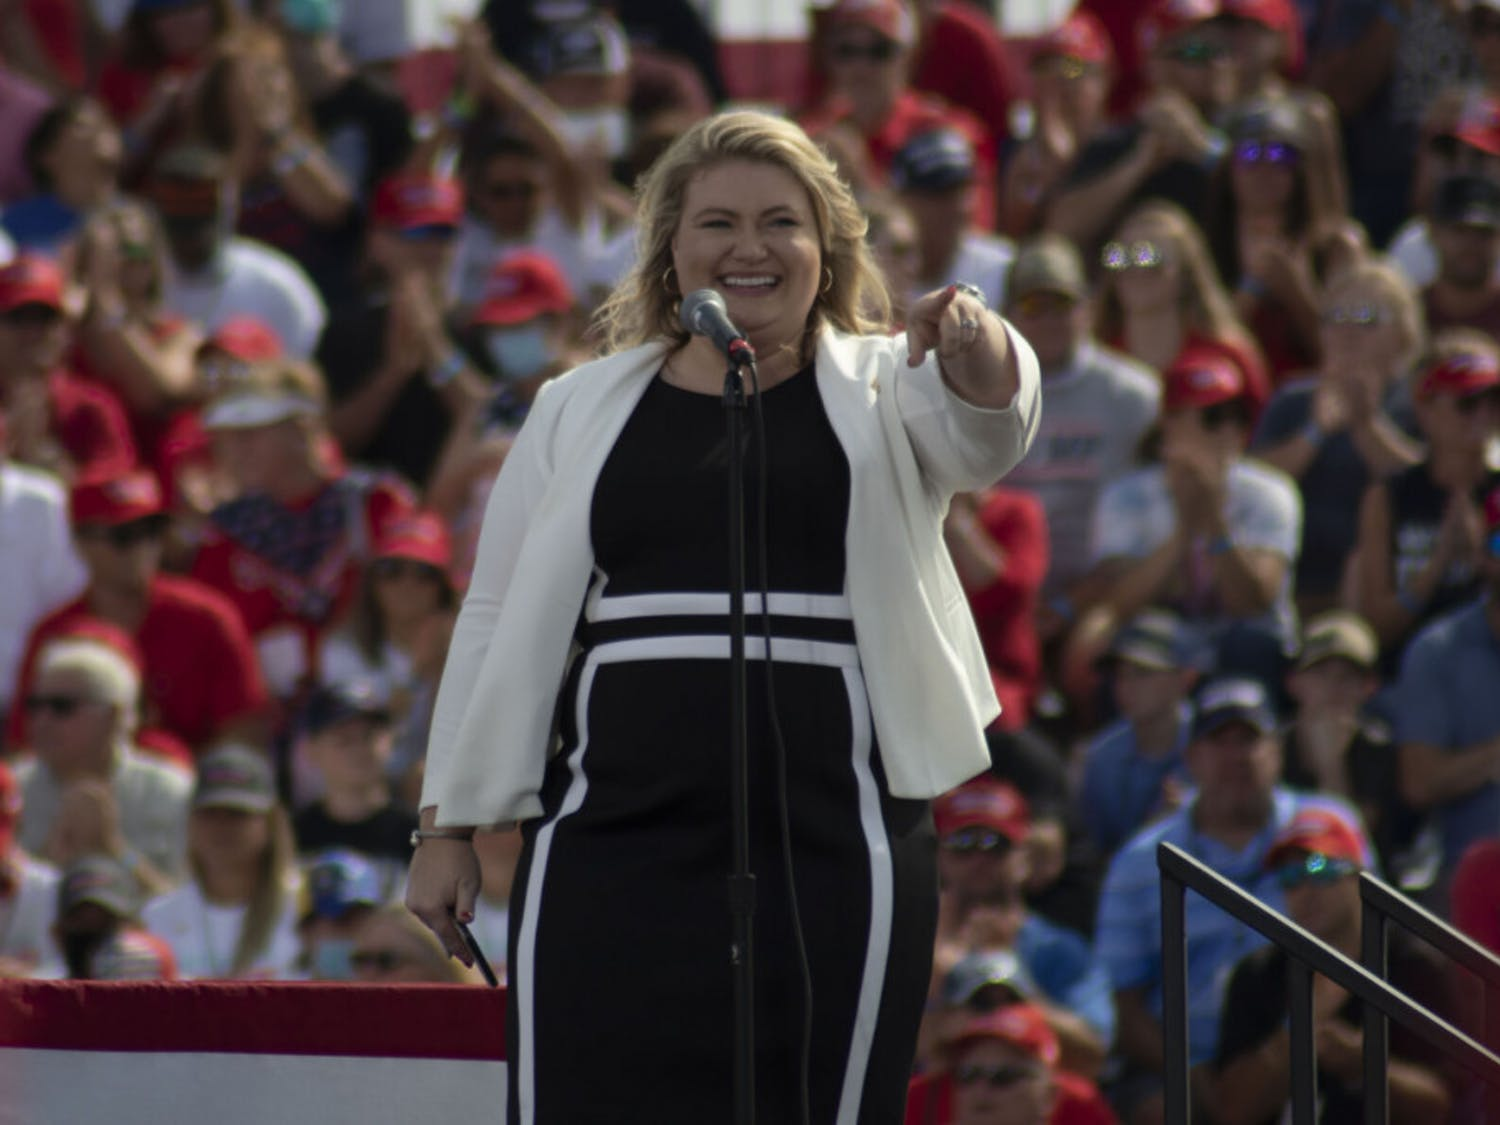 Kat Cammack, winner of the Congressional District 3 race in the 2020 election, is seen giving an opening speech at President Donald Trump's campaign rally last month. The event was held at the Ocala International Airport in Florida on Oct. 16, 2020.